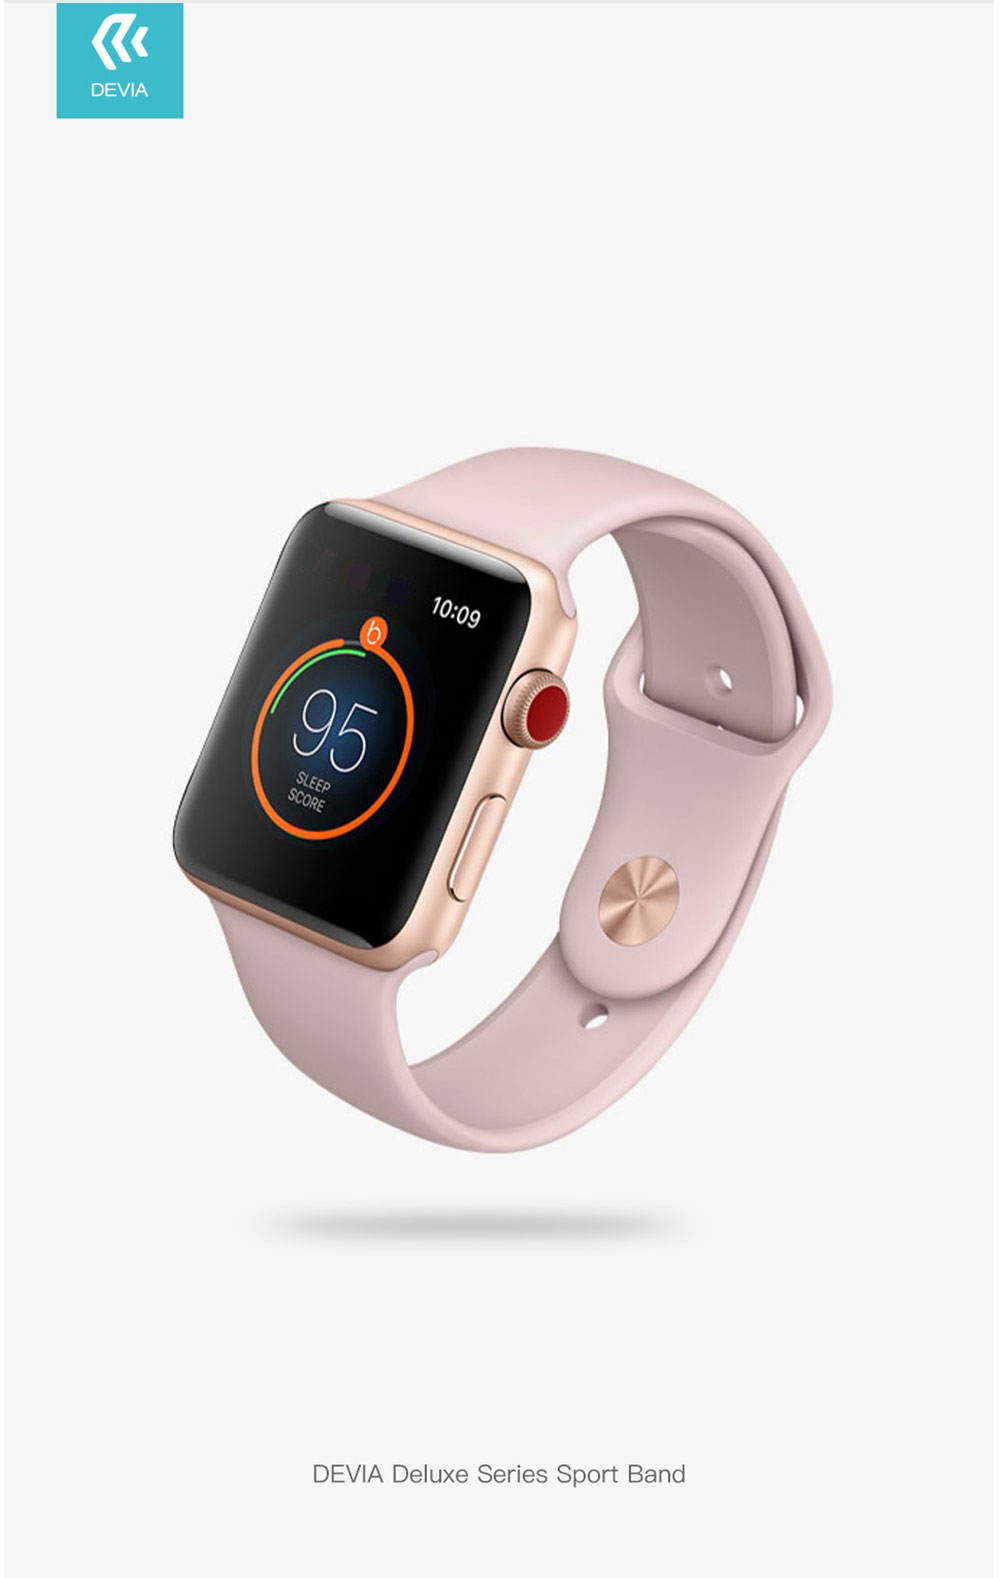 Durable and lightweight, the Devia Apple Watch Case in red made out of a strong yet soft to the touch TPU offers premium protection in a slim, stylish and colourful package.